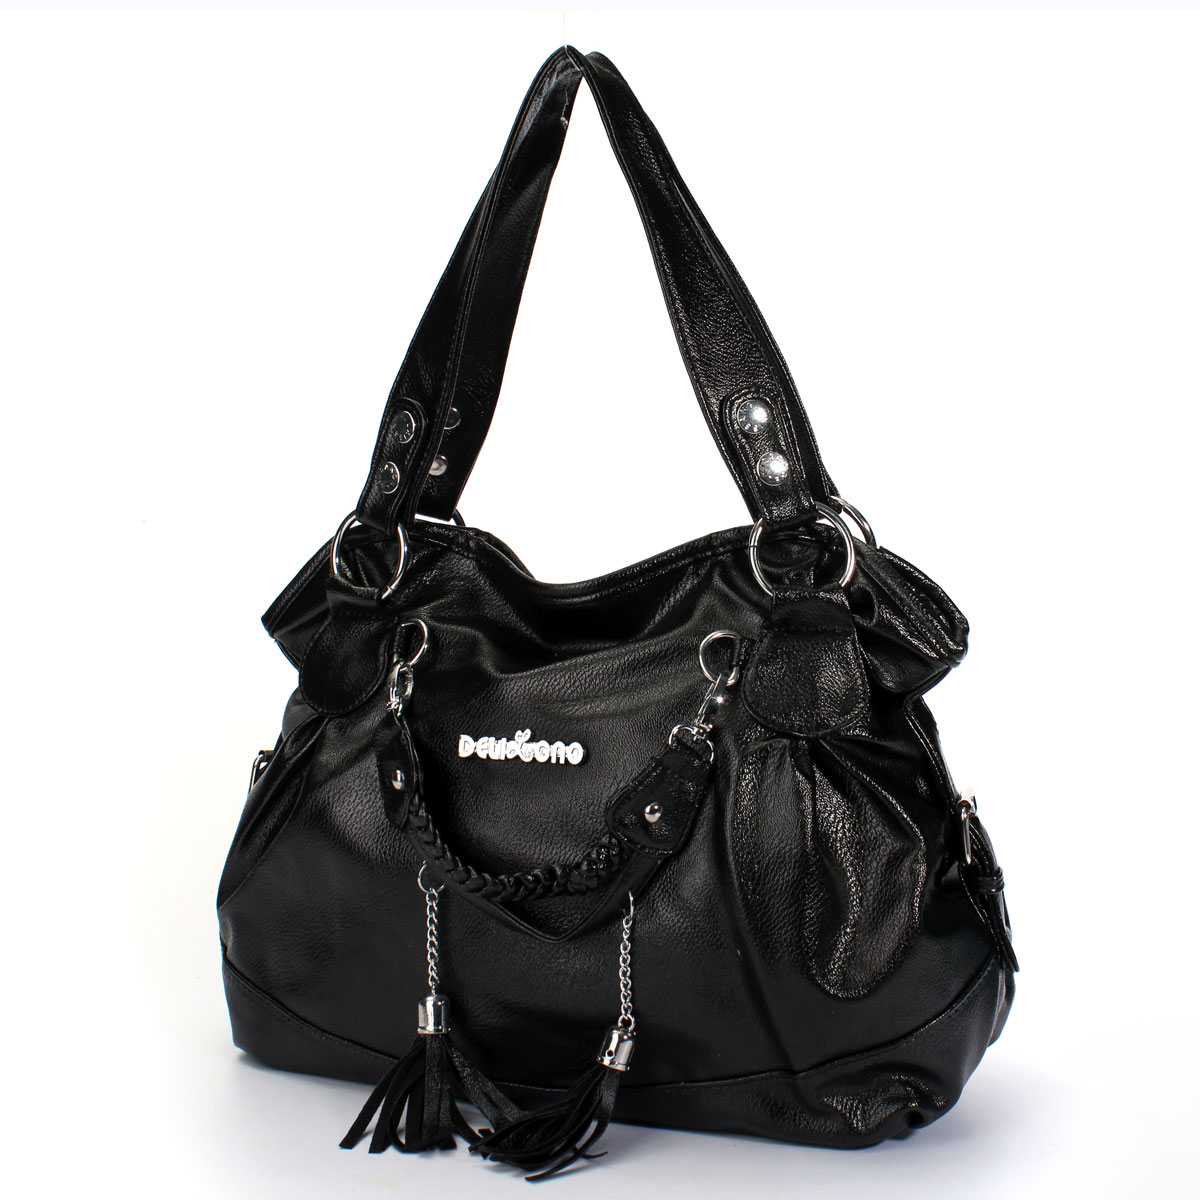 Fashion Leather Tassel Handbags For Women Shoulder Bag Purse Messenger Shopper Tote Bag,Black color